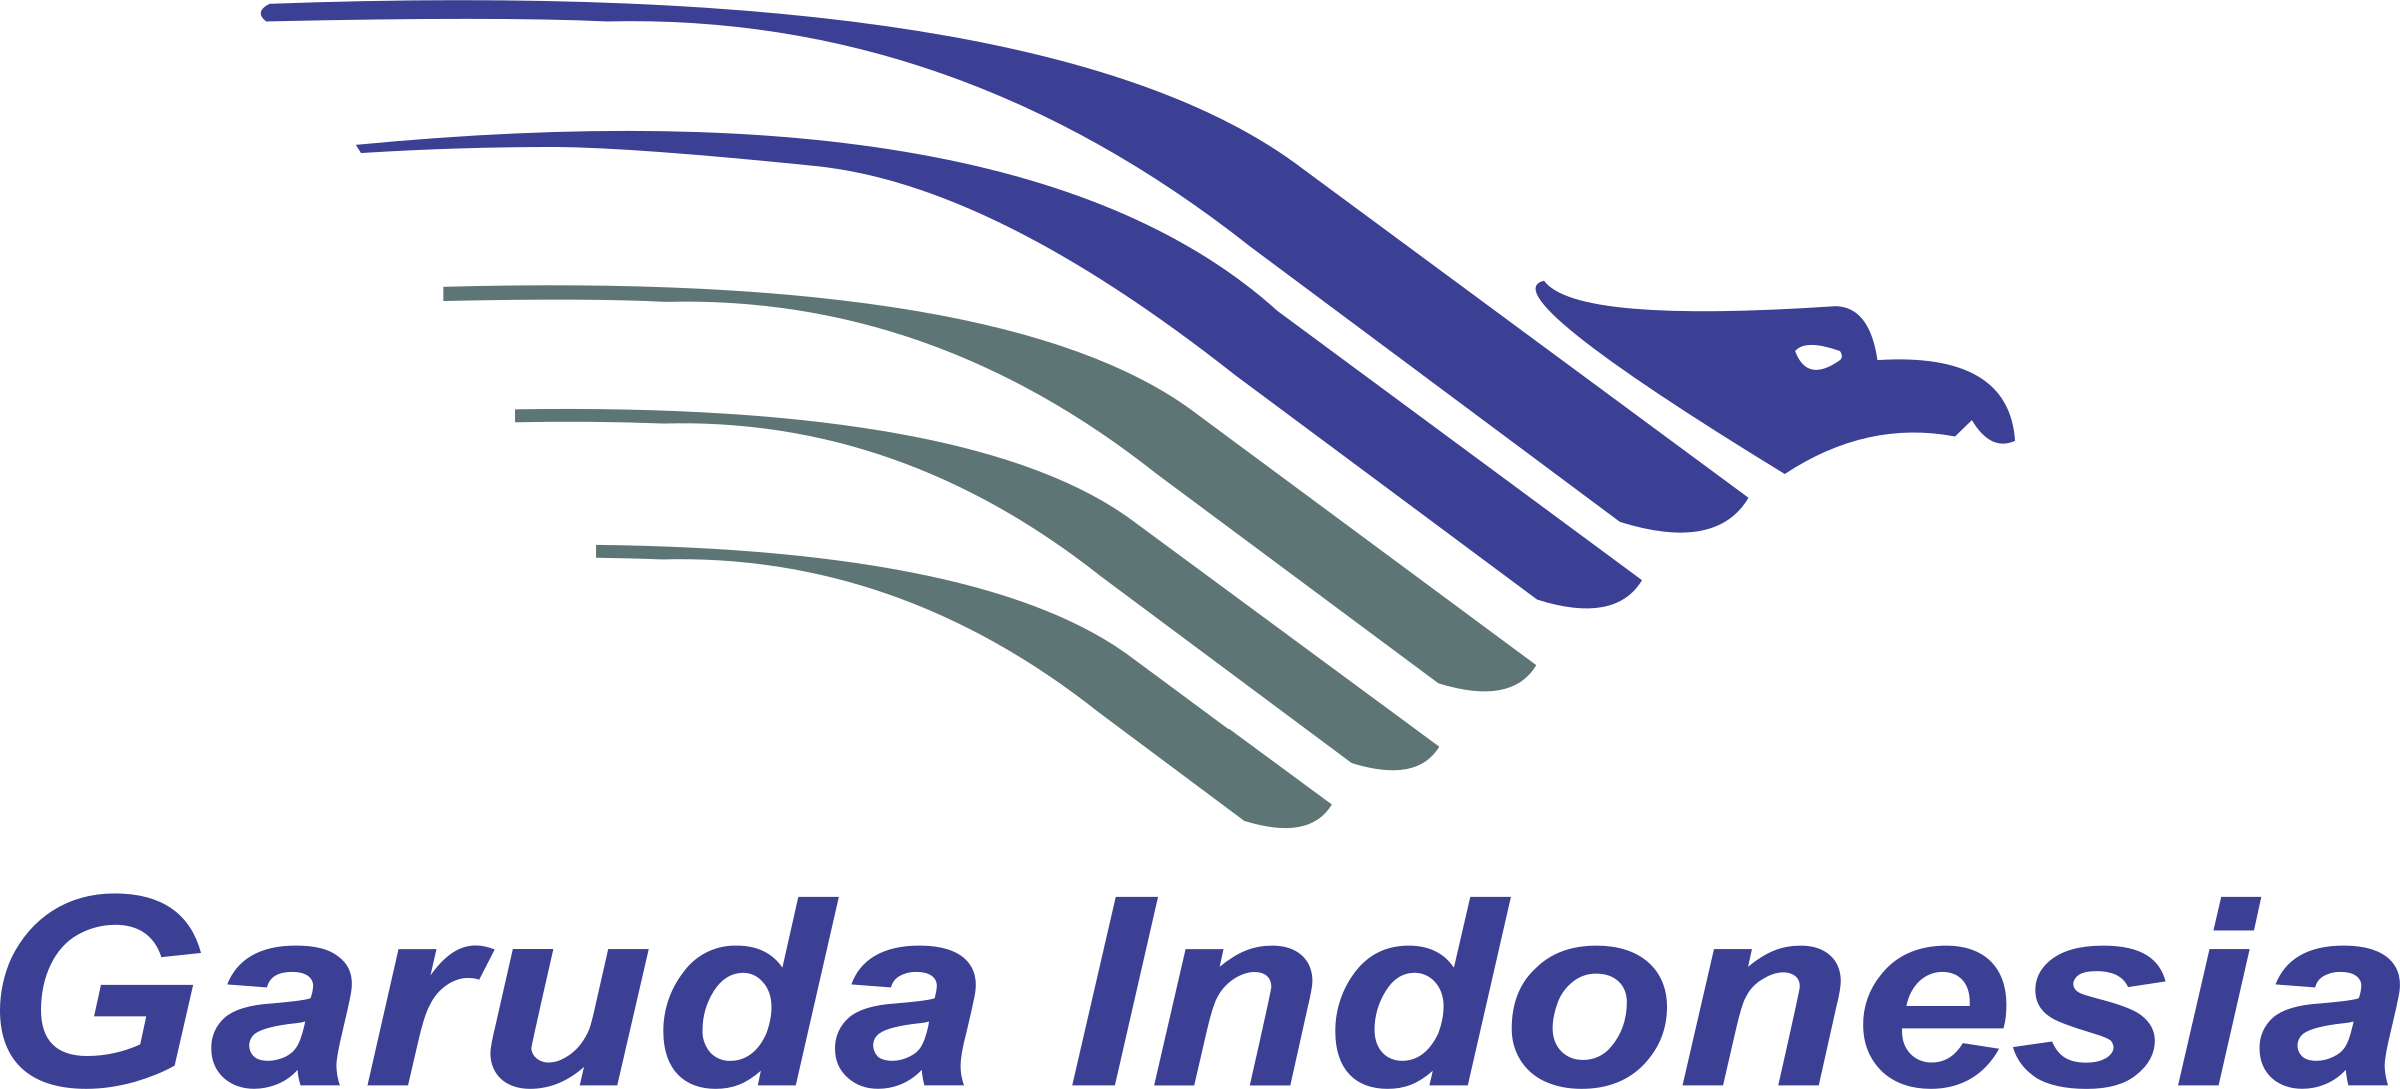 Garuda Indonesia Logo PNG Transparent & SVG Vector.